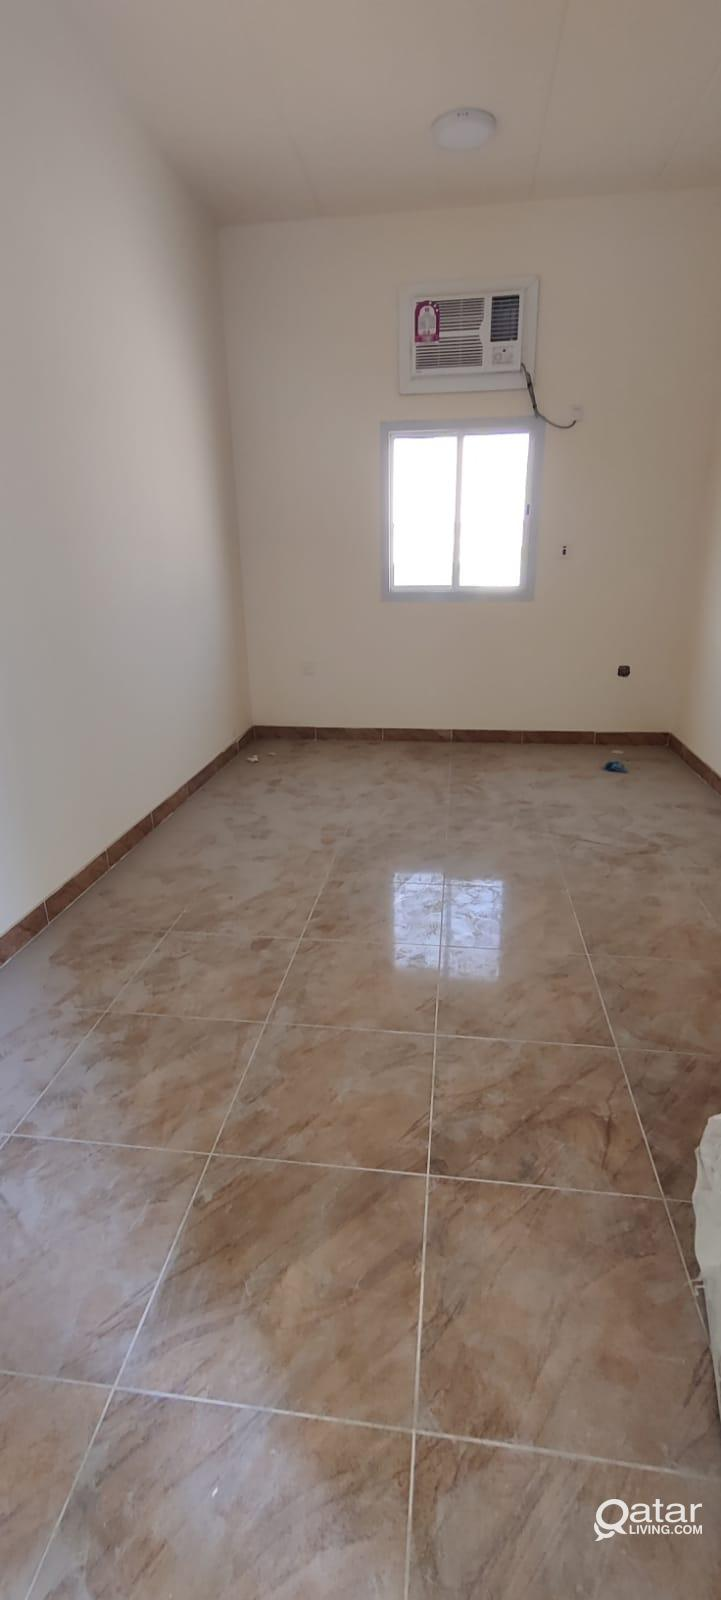 102 Room For Rent